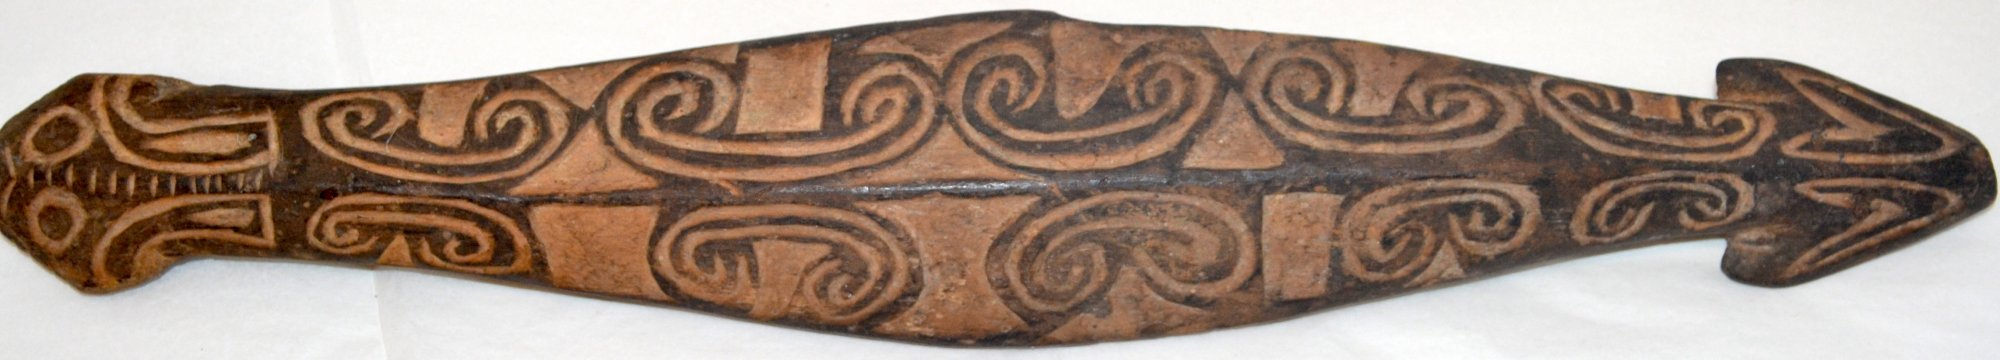 Oceanic Art wooden carved tool